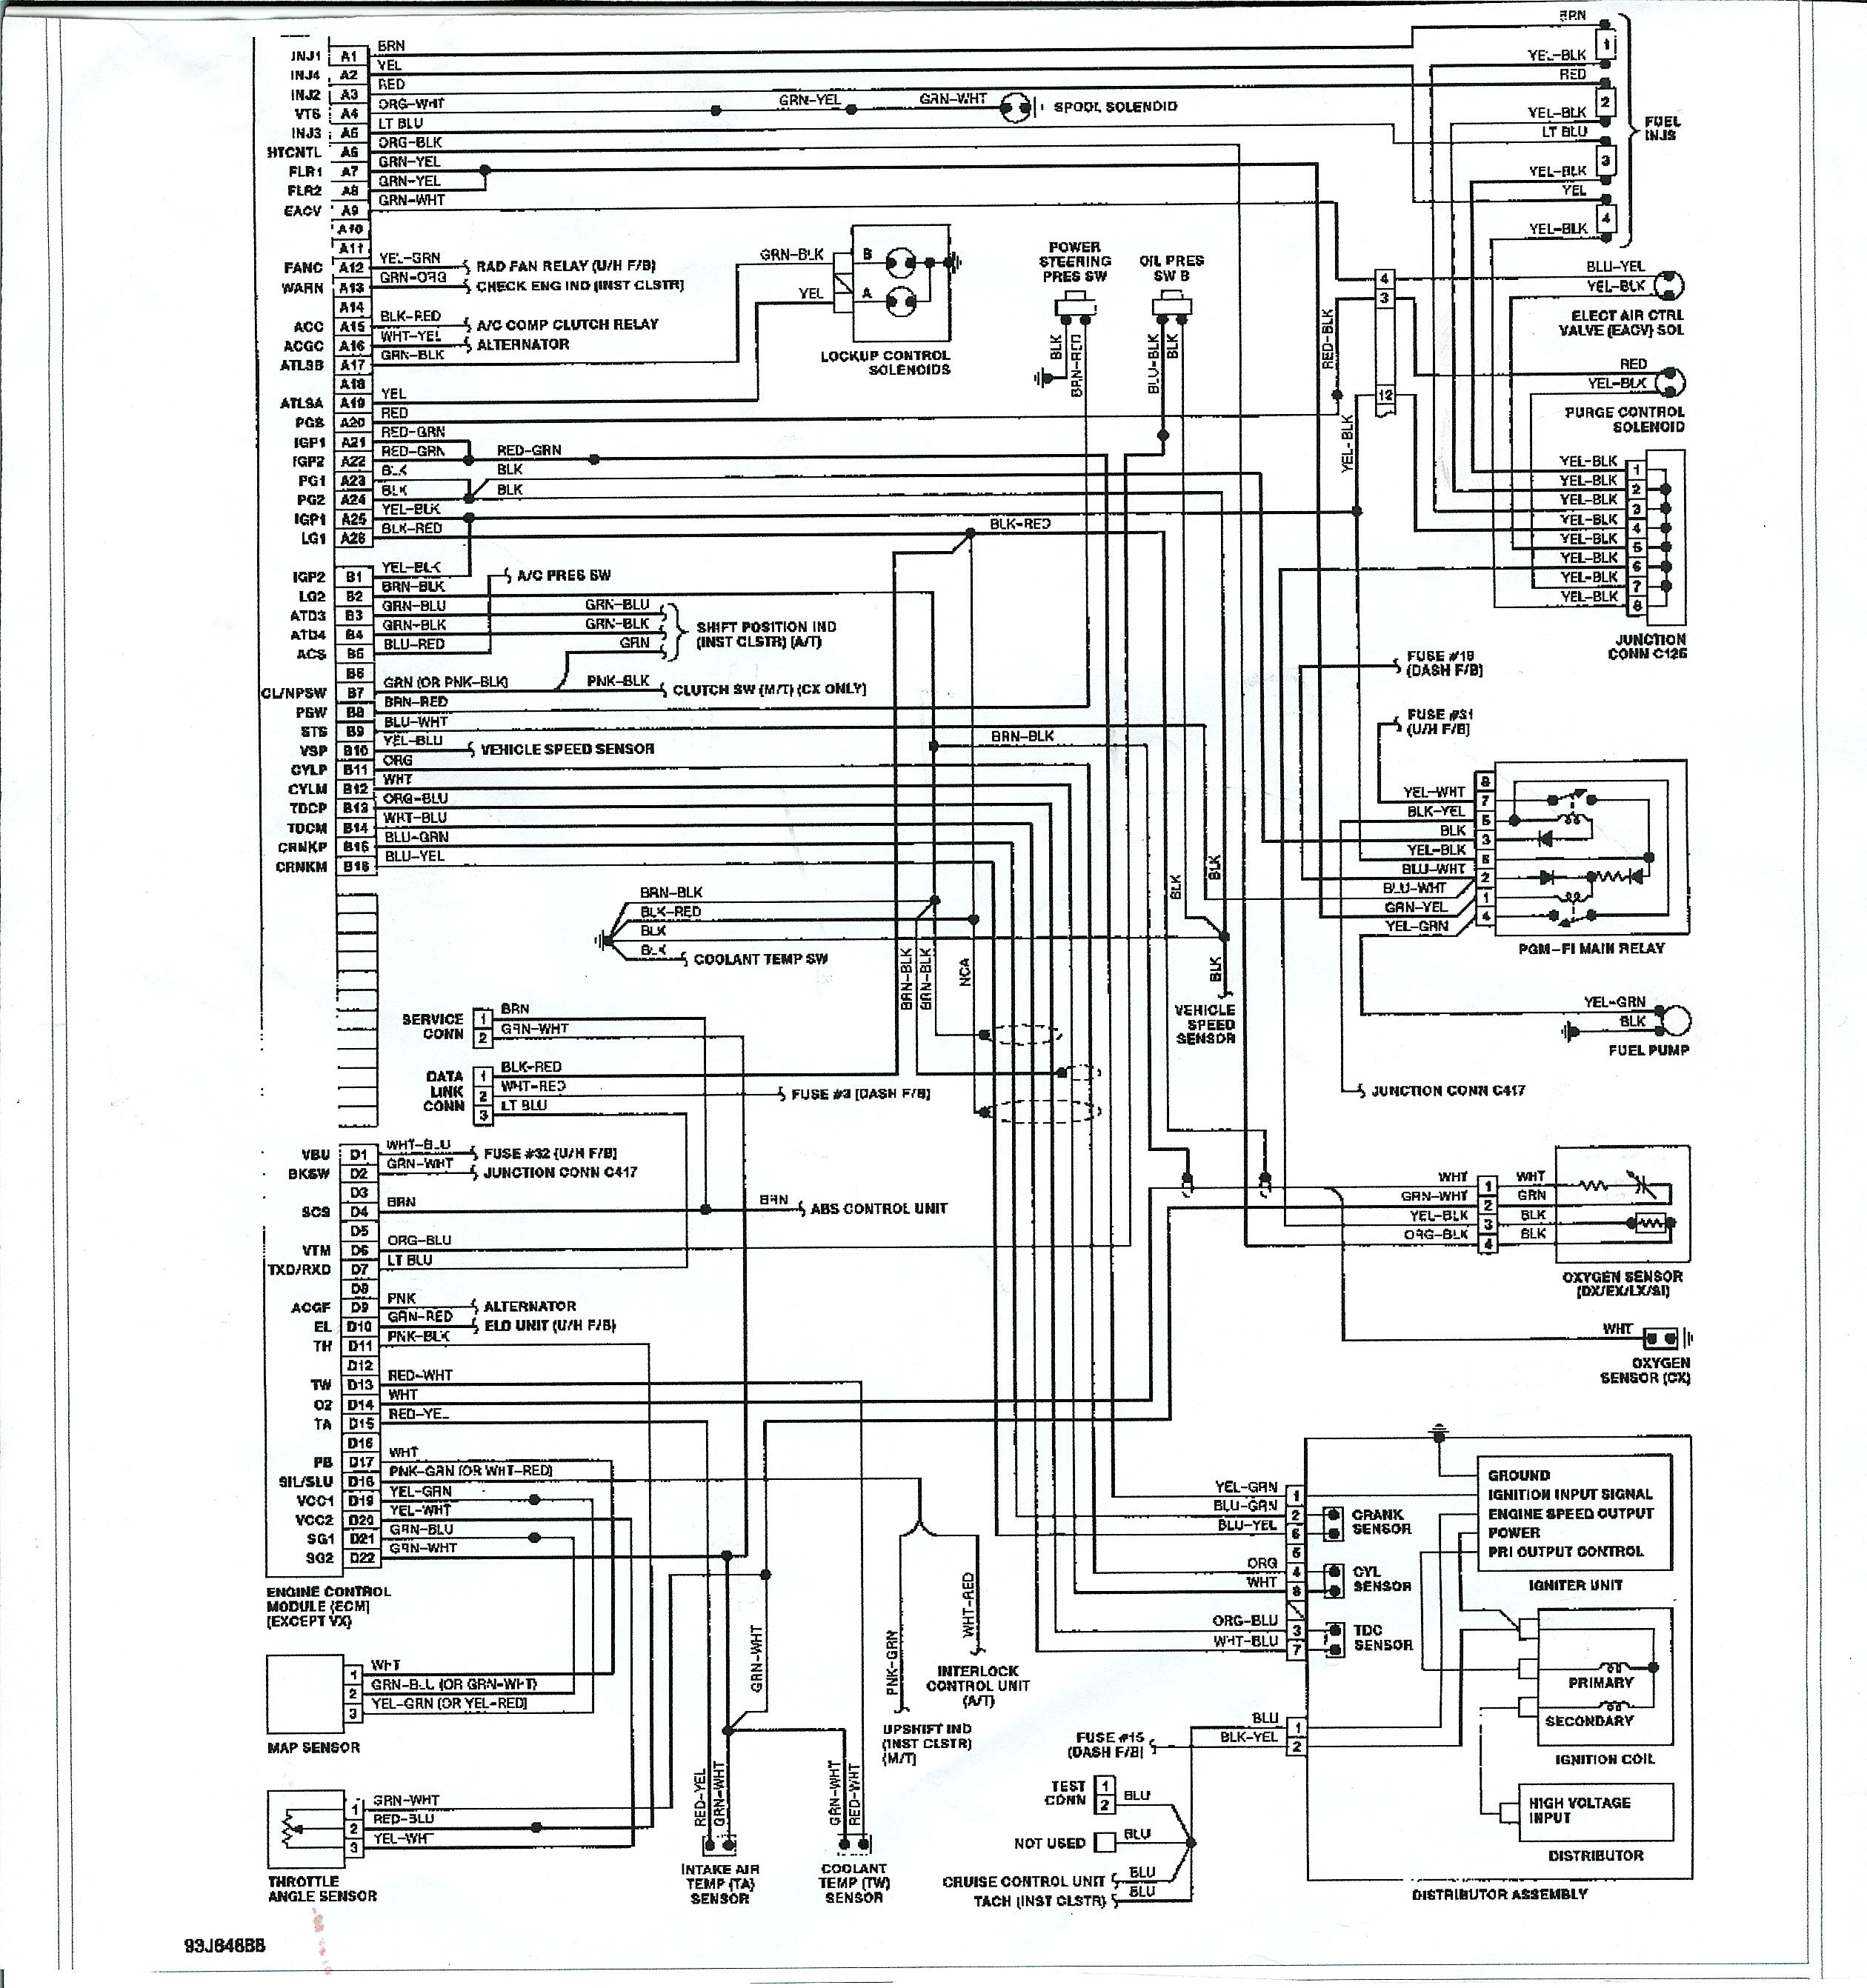 2003 Civic Ecu Wiring Diagram : 29 Wiring Diagram Images